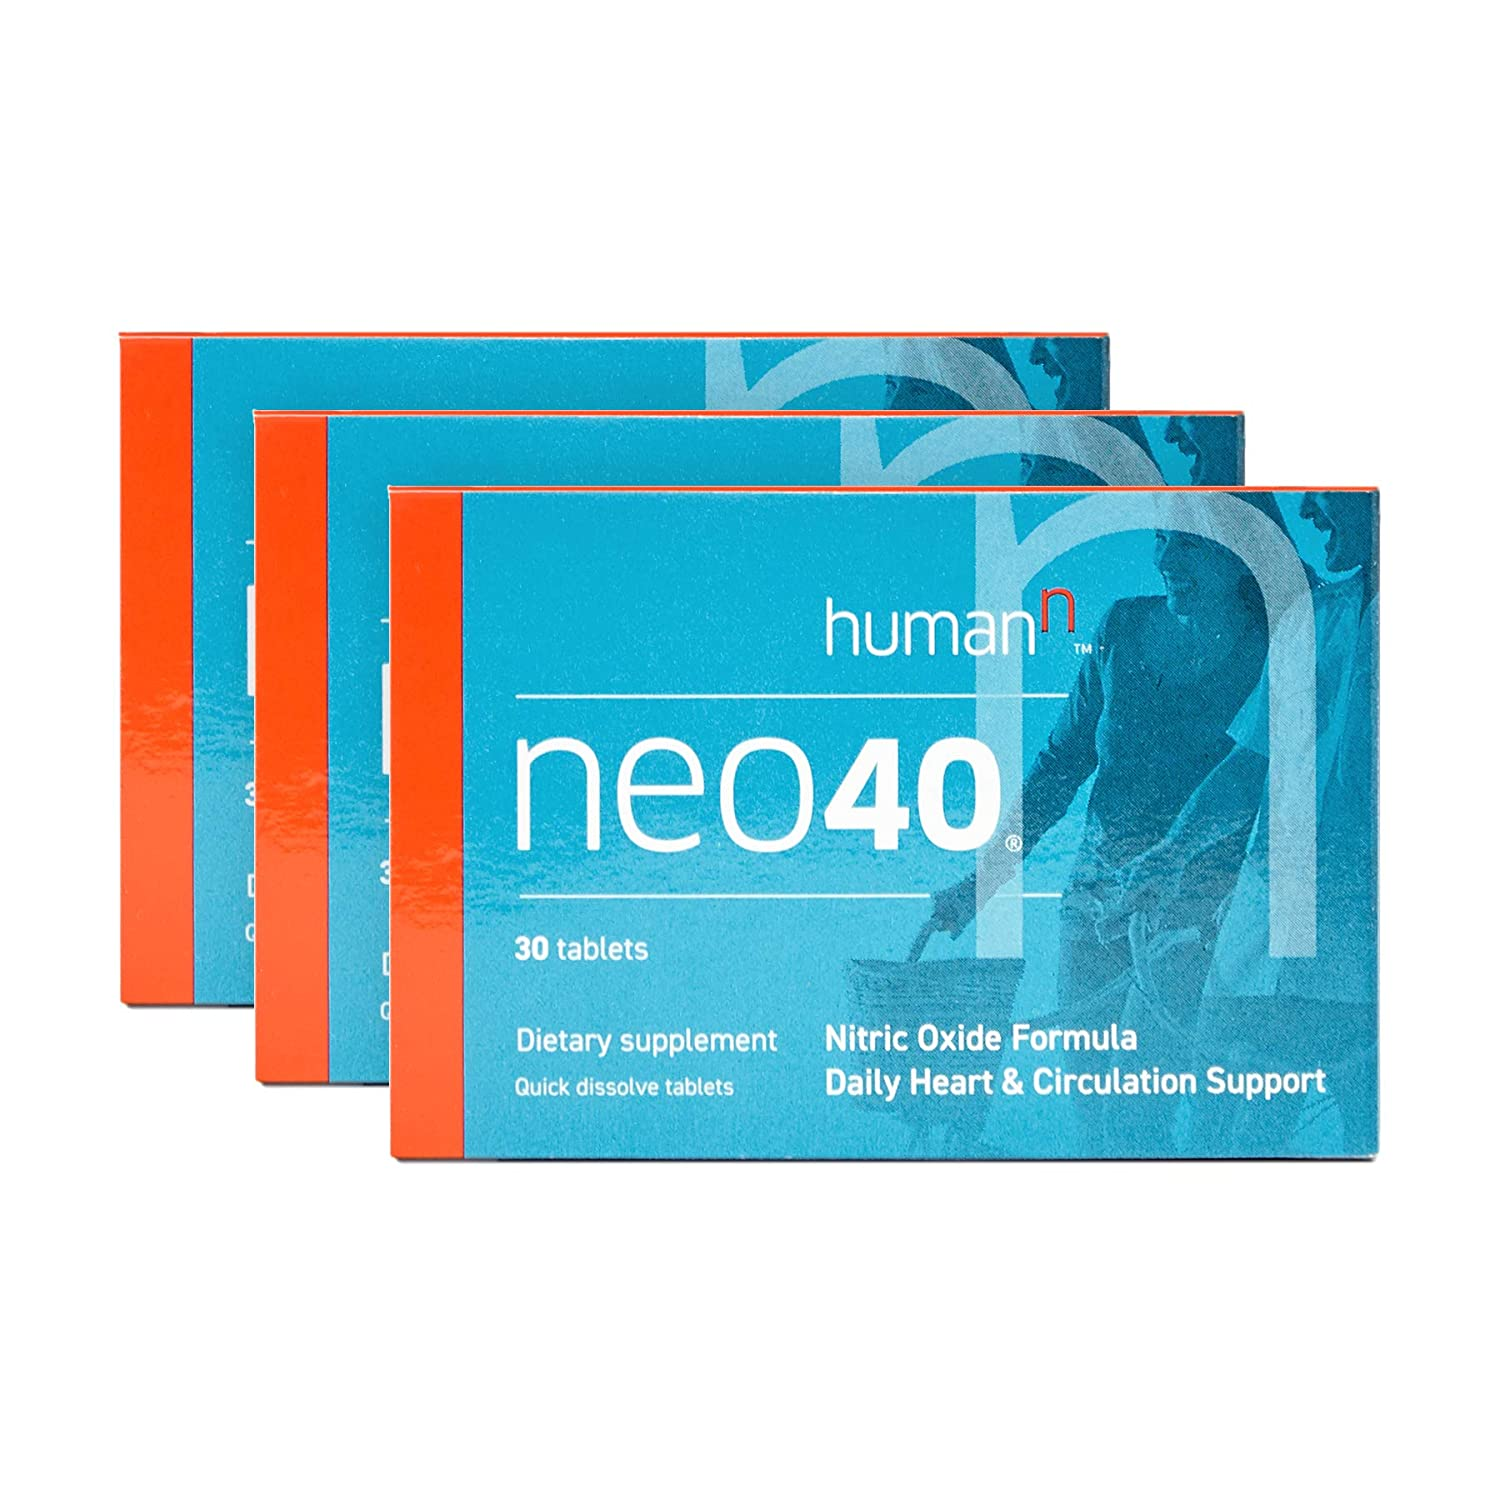 HumanN Neo40 Daily Heart and Circulation Support Nitric Oxide Boosting Supplement 30 Tablets, 3-Pack